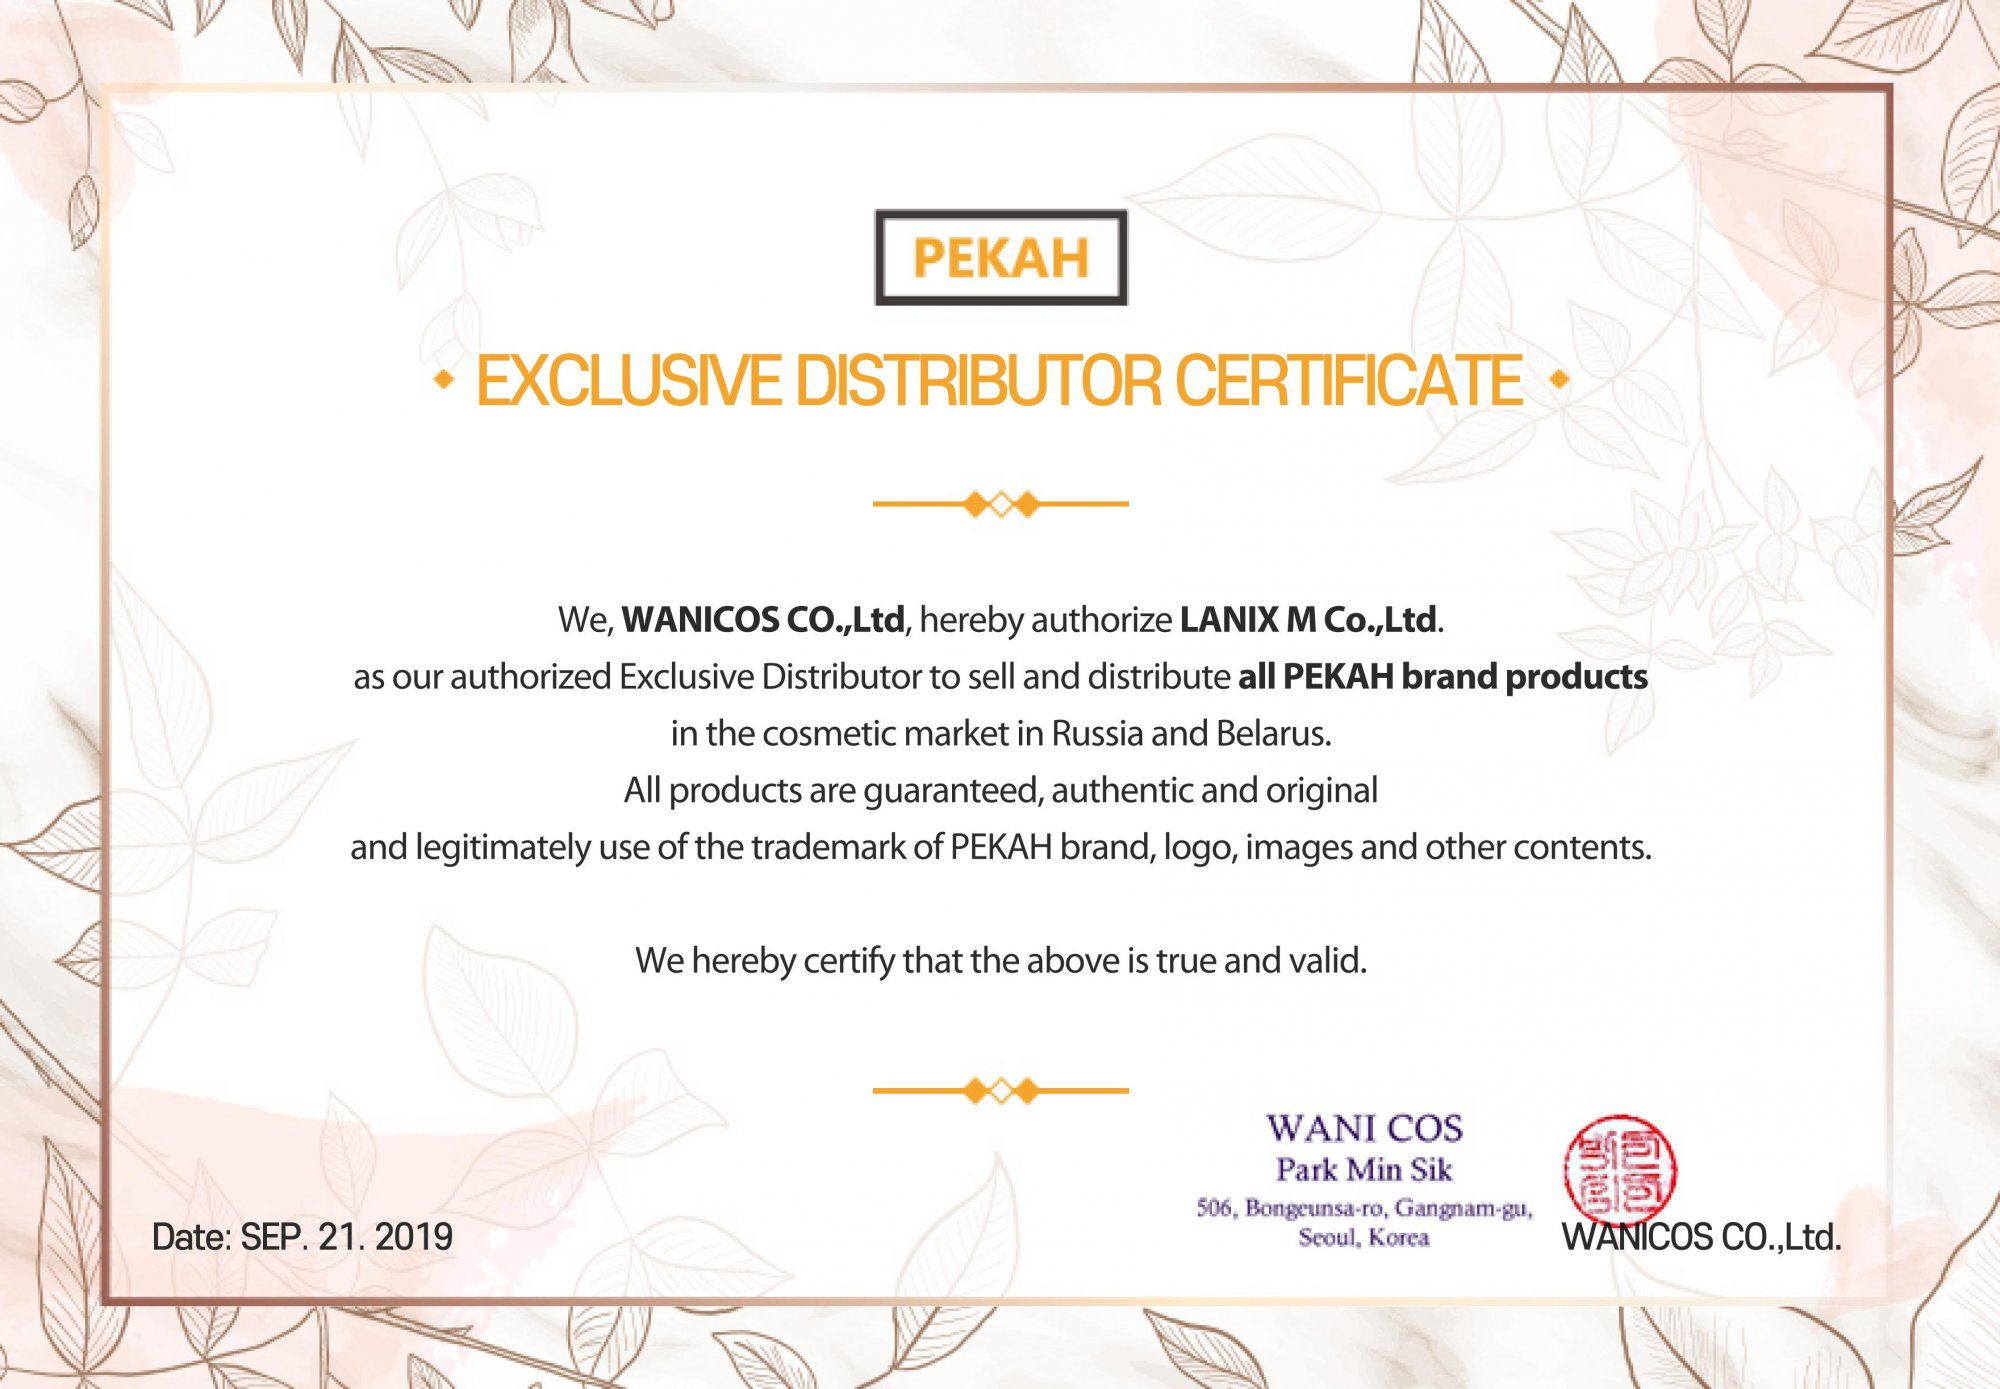 PEKAH EXCLUSIVE DISTRIBUTOR CERTIFICATE